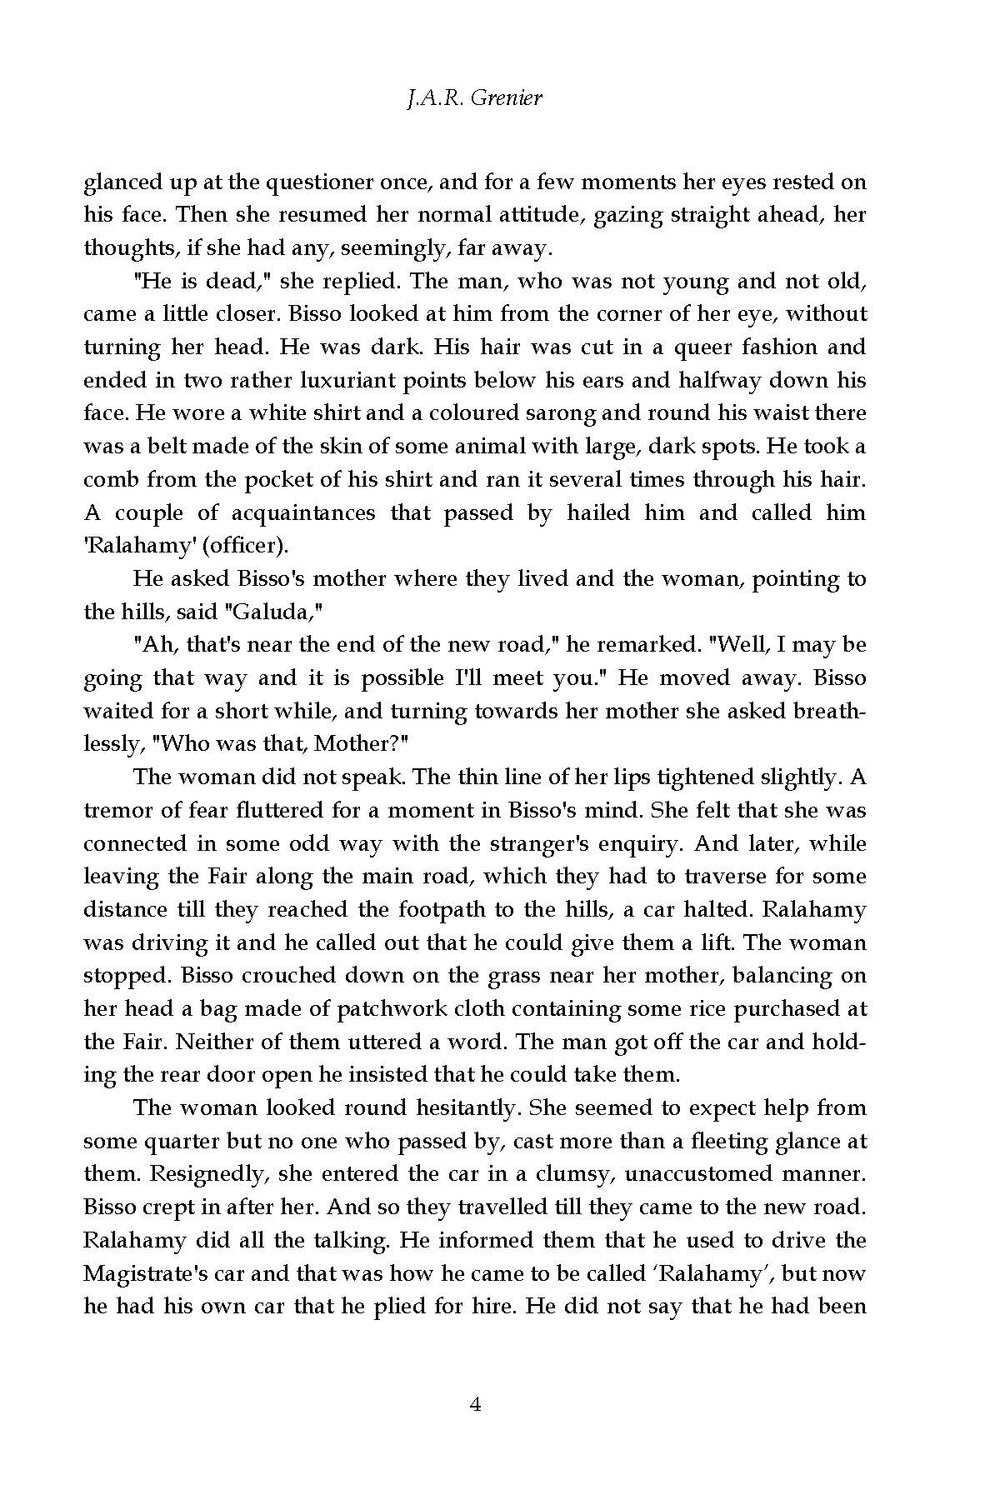 jgre050217 (final text)_Page_06.jpg